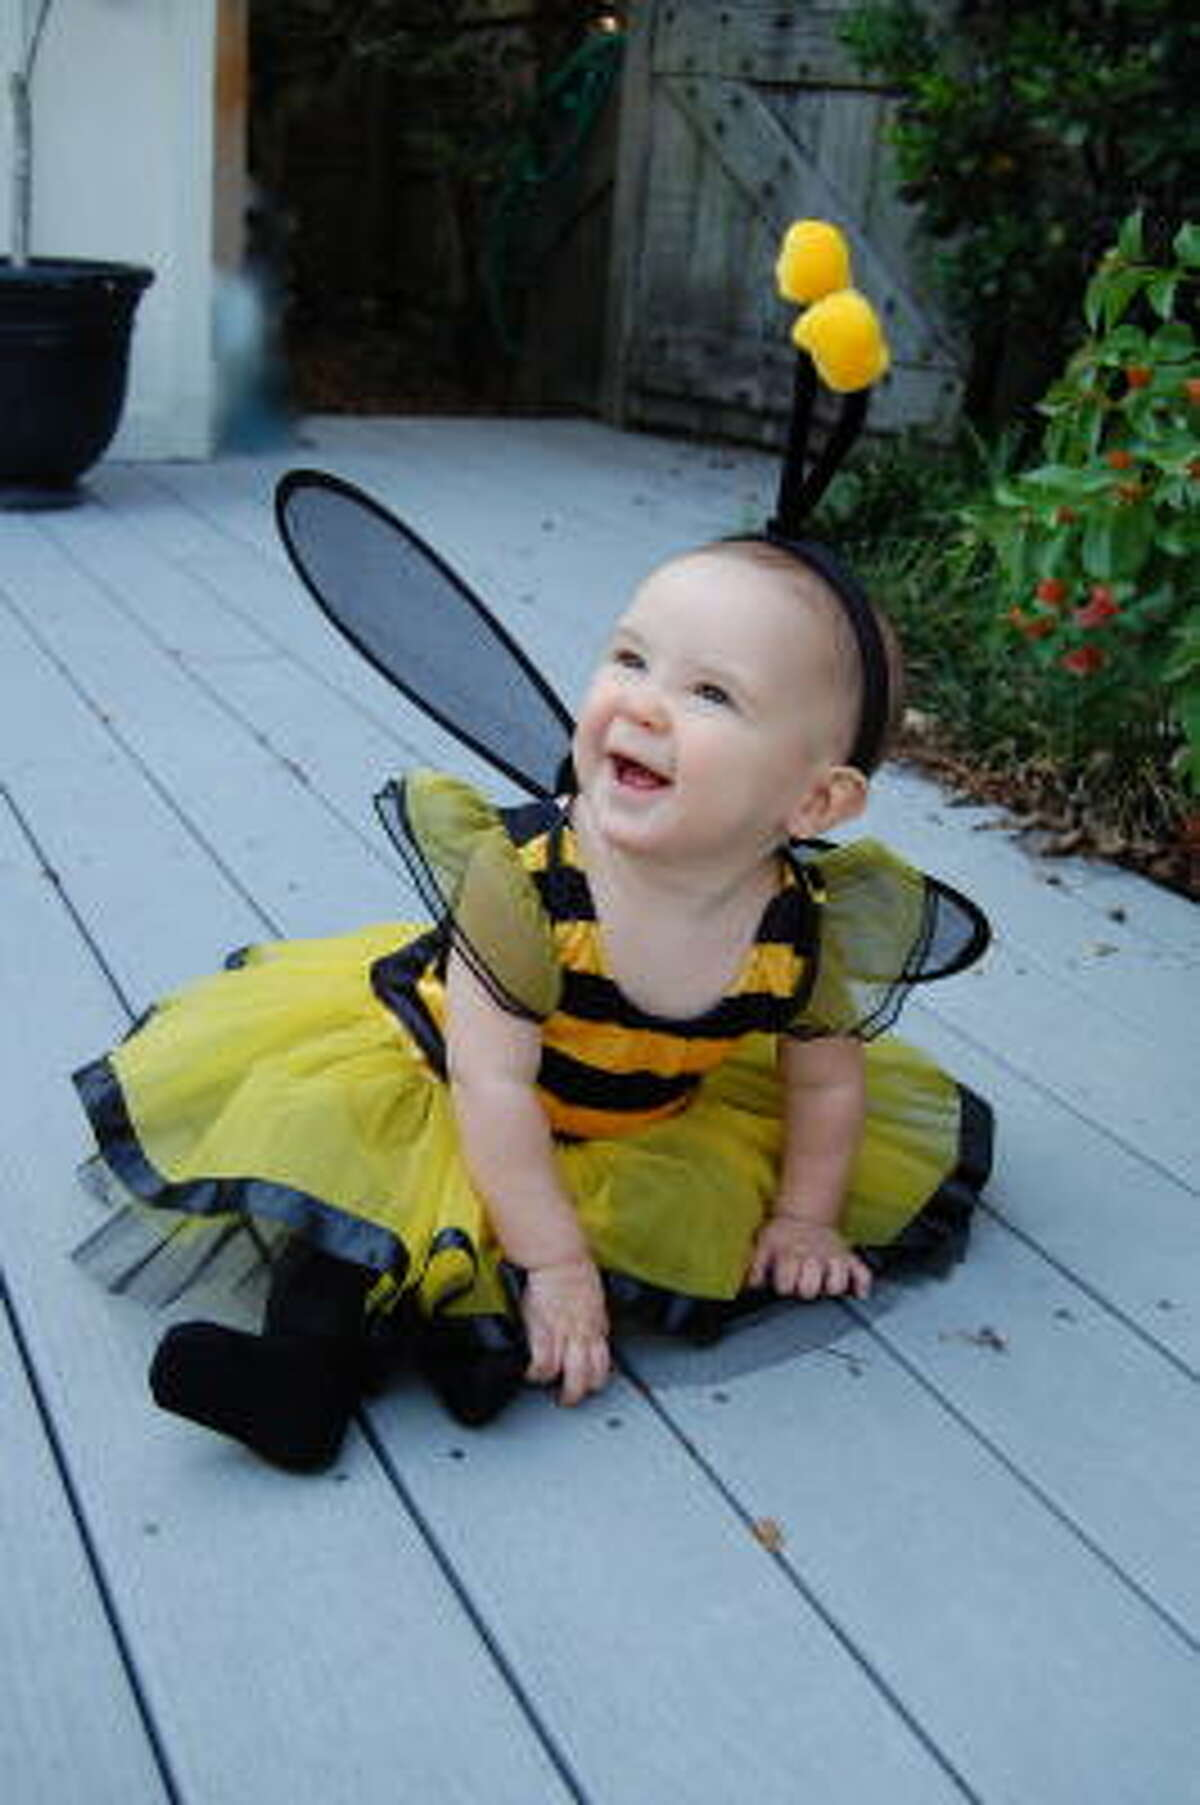 bumblebee Sexy costumes for pre-teens, adults dressed like babies and other costumes to avoid.